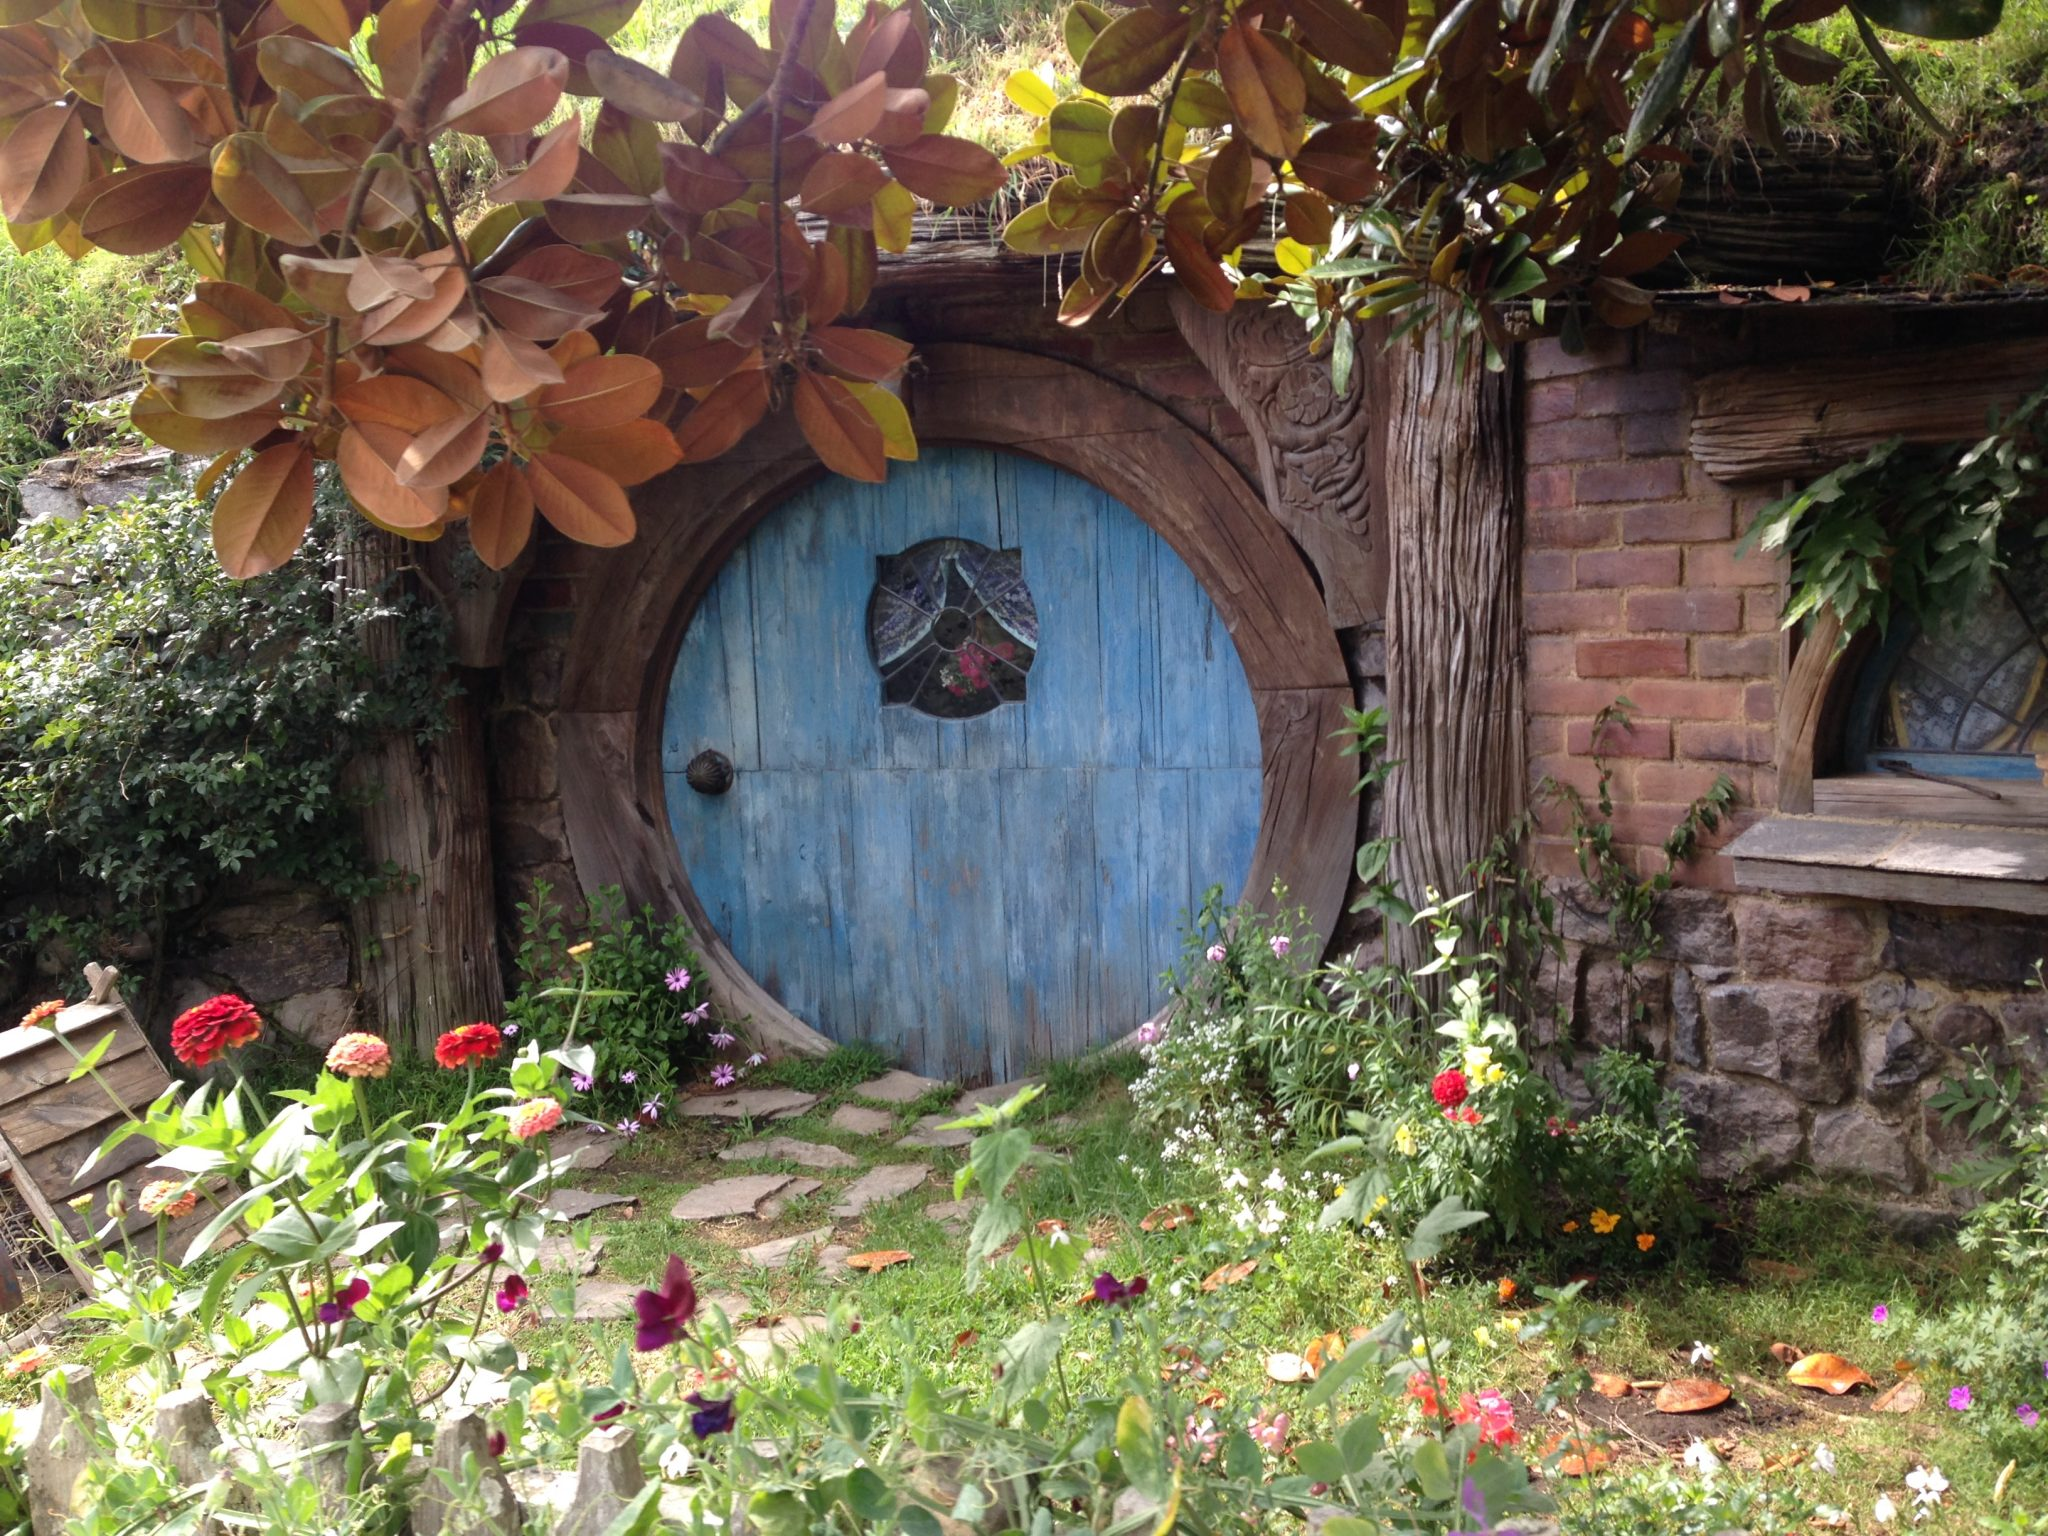 Hobbiton Movie Set, New Zealand.